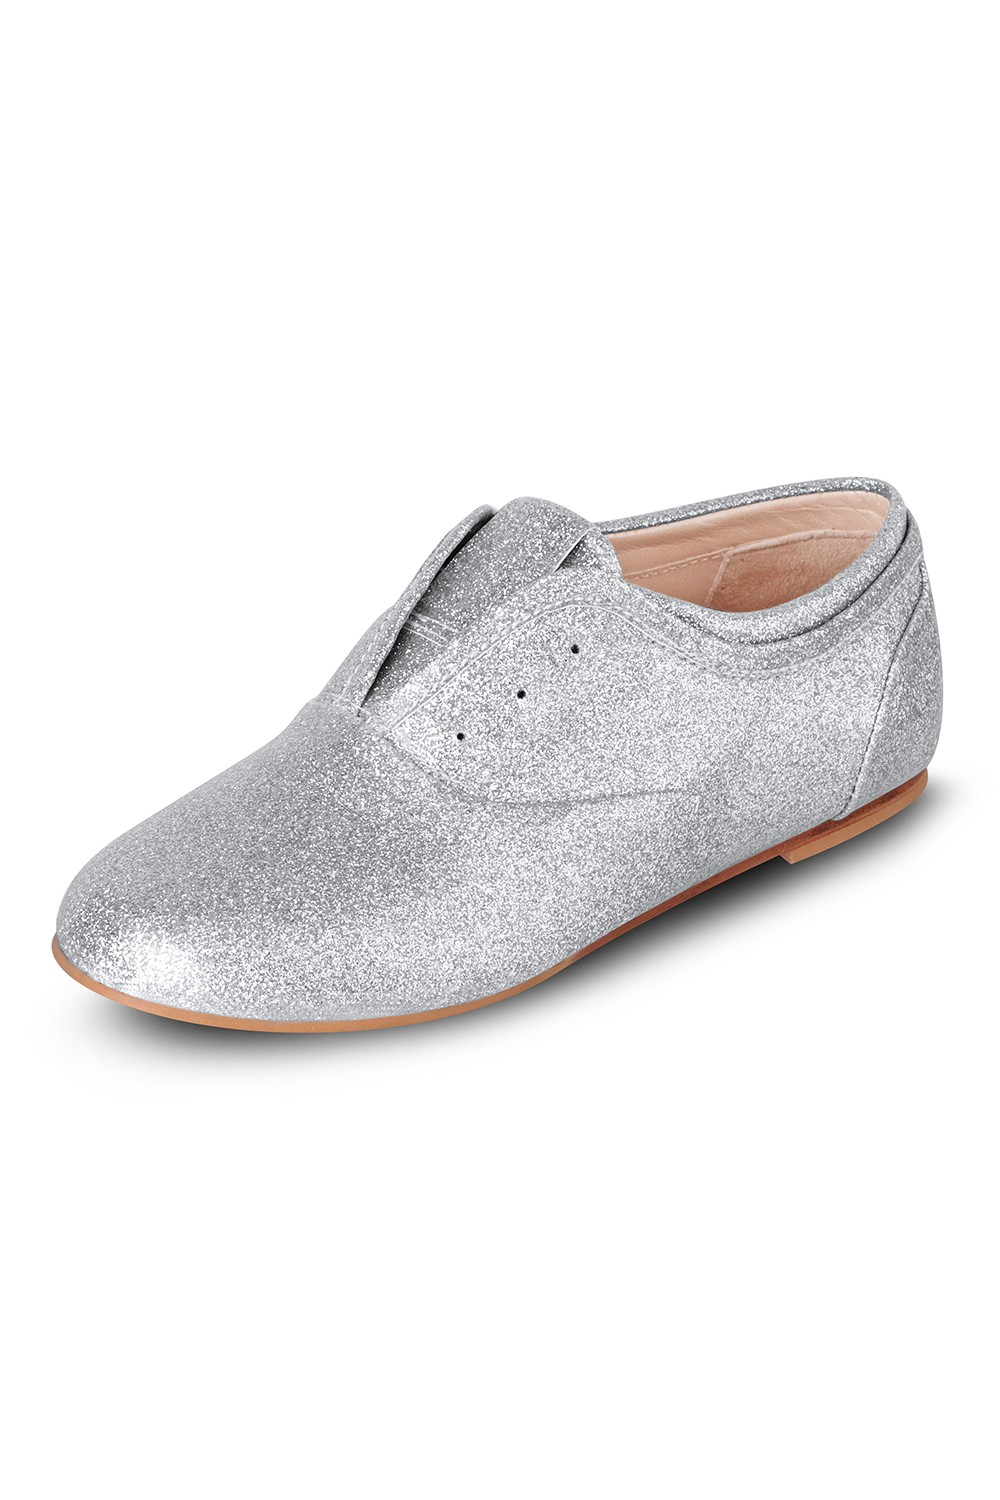 Charline - Tween Girls Fashion Shoes